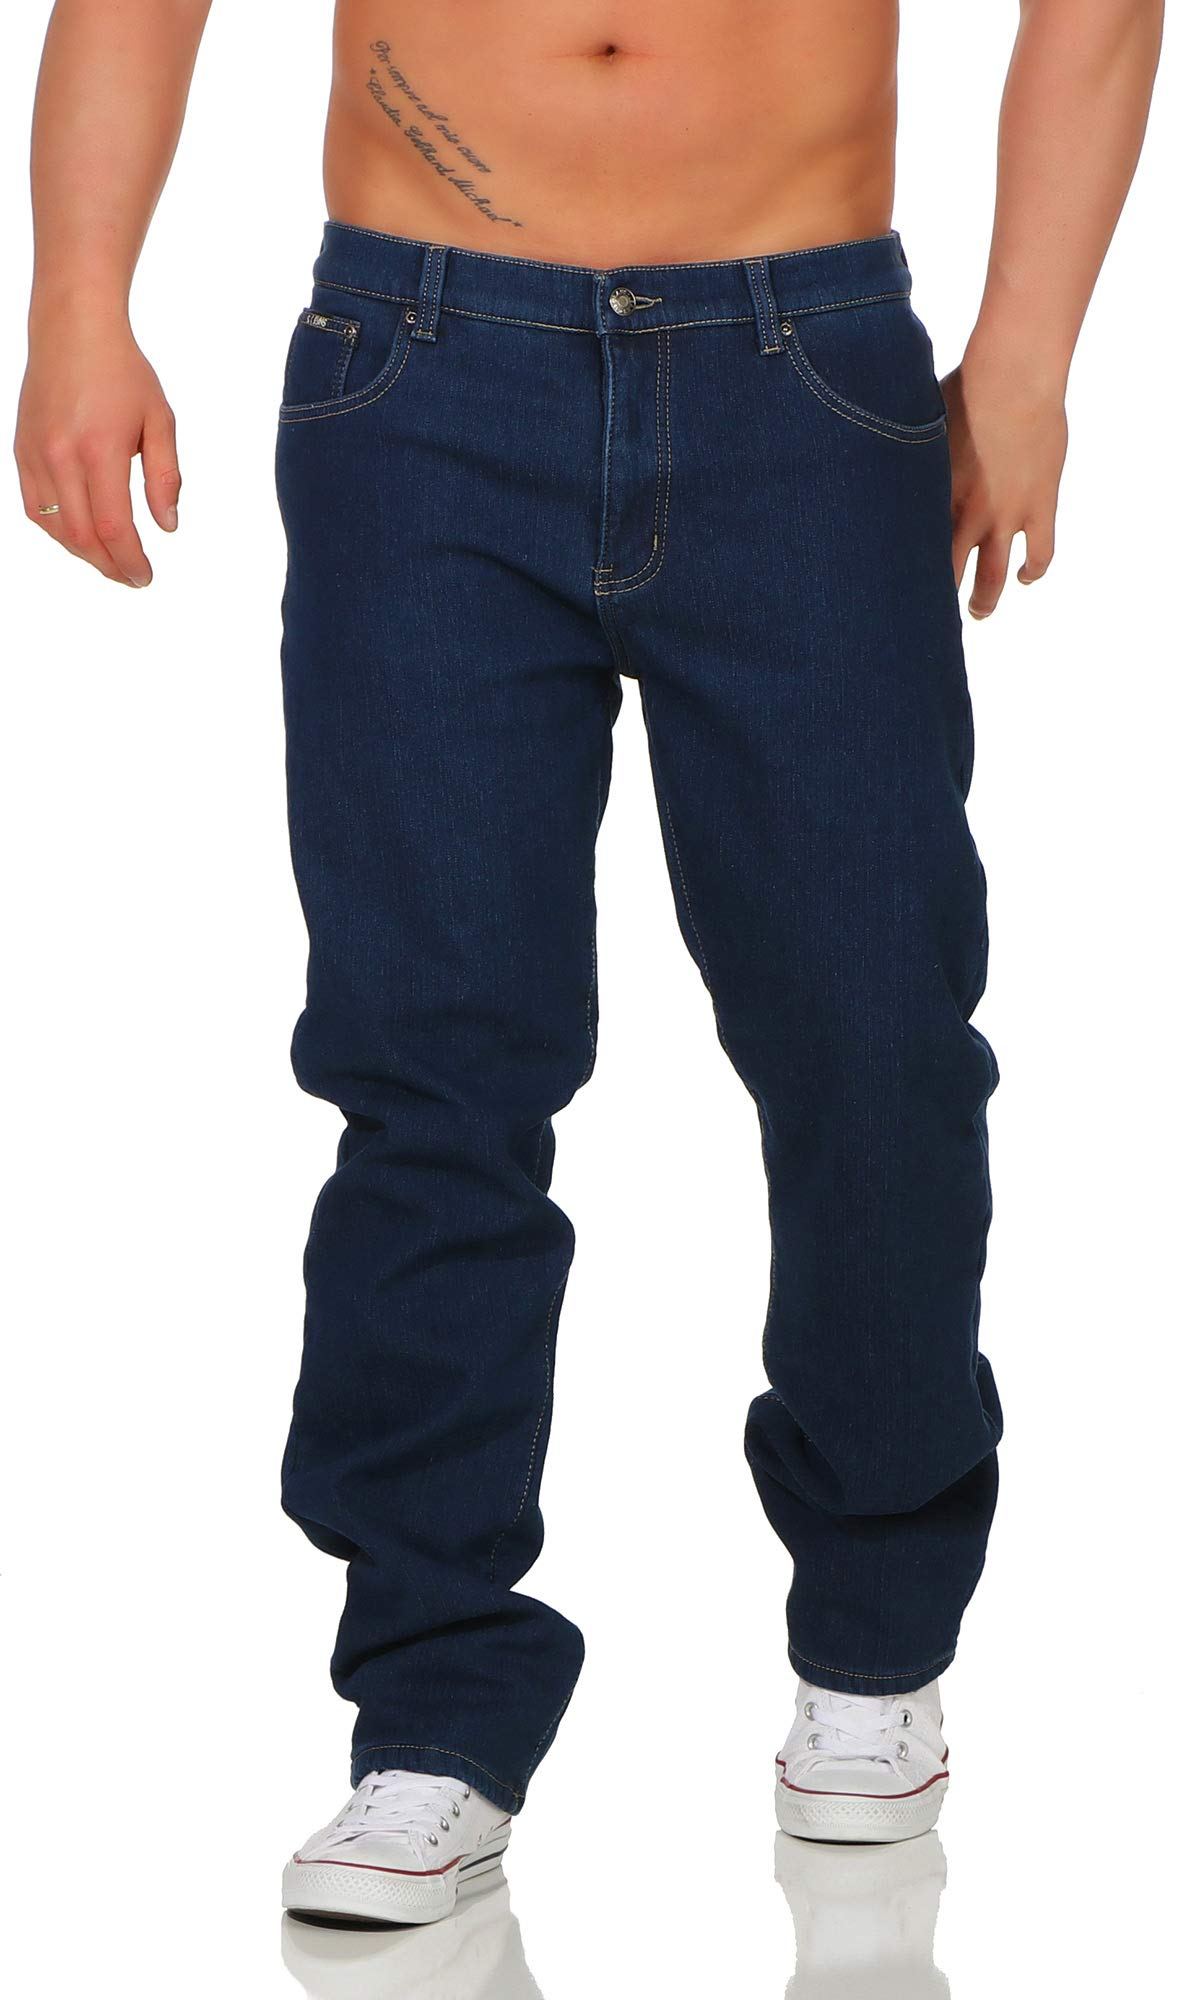 Men's Clothing Replay Jeans 29 32 Herren Blau Stylisch Top Selten Big Clearance Sale Clothing, Shoes & Accessories